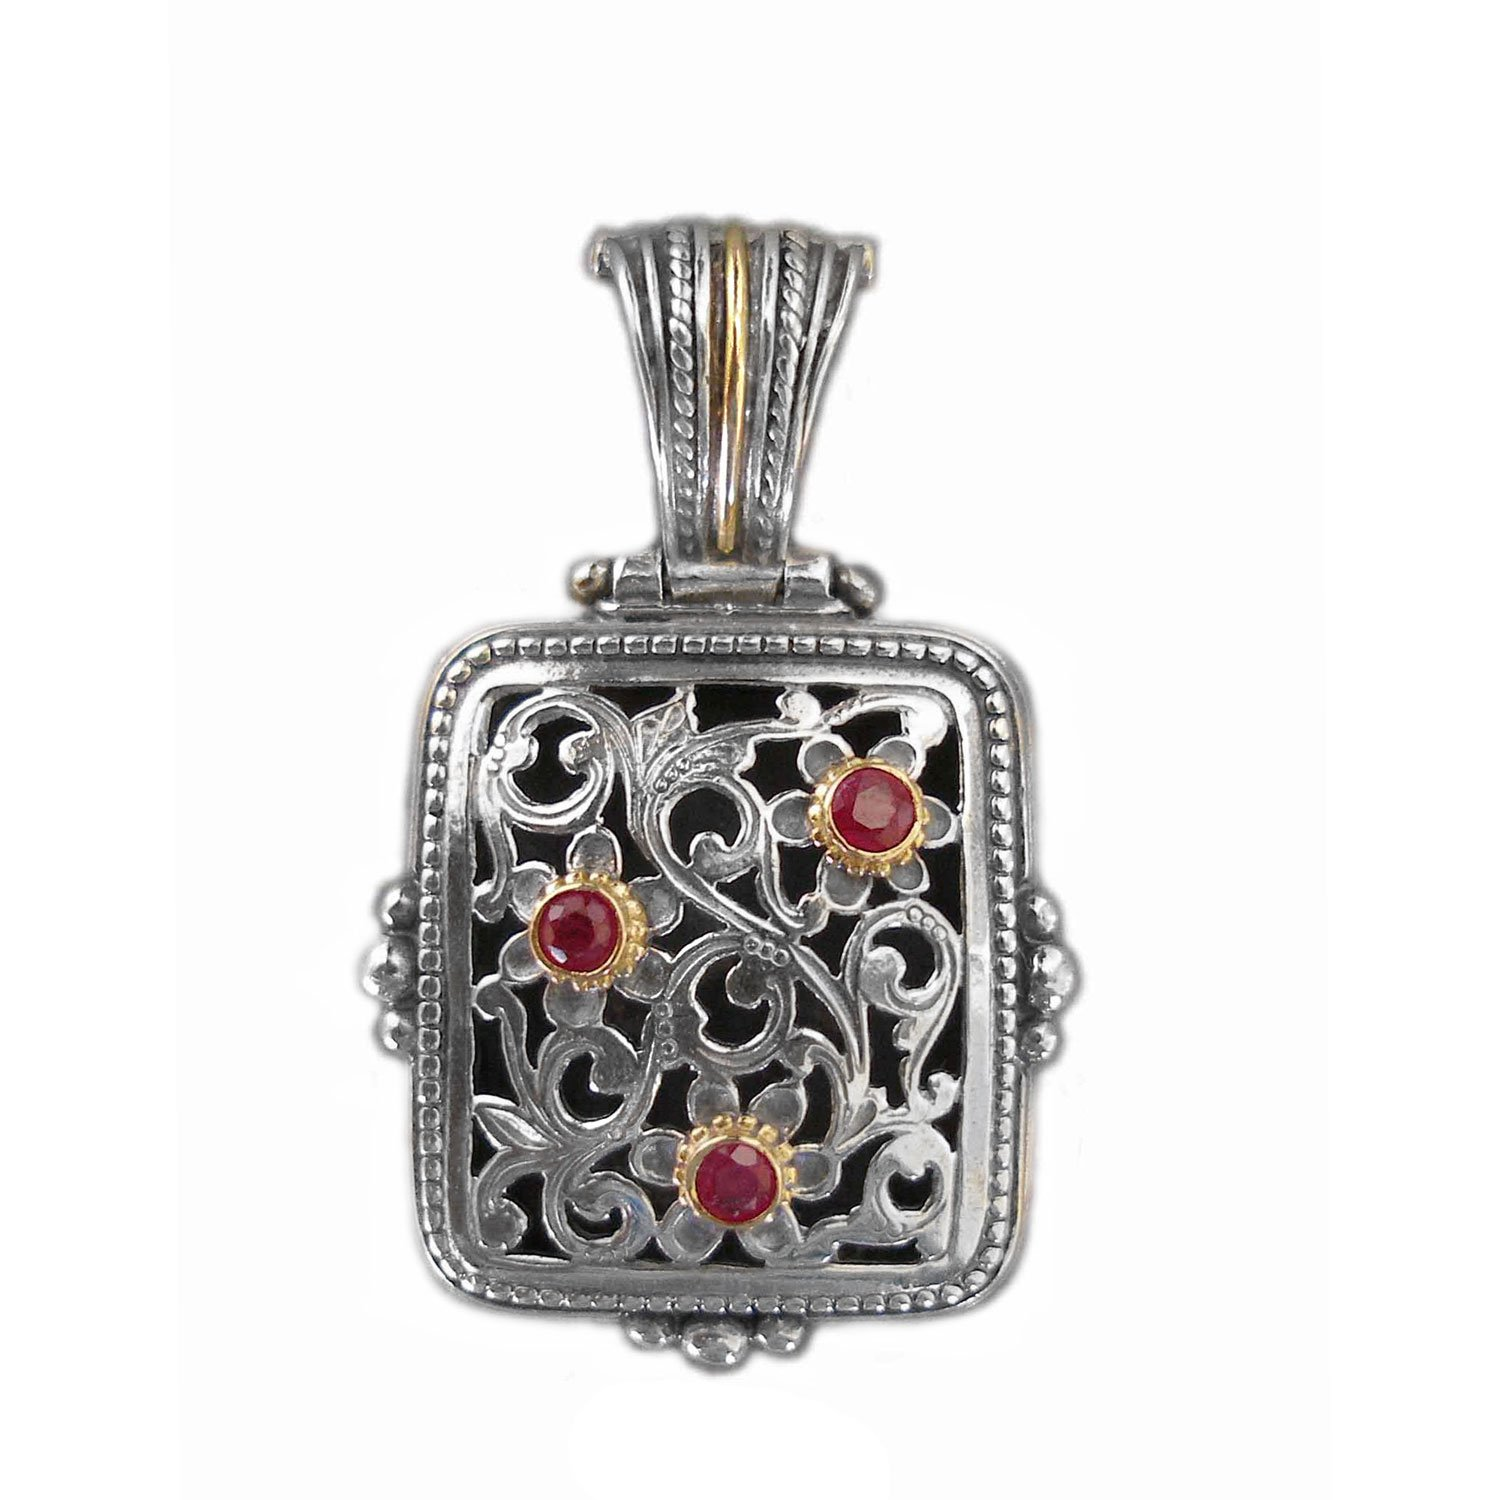 Gerochristo 3263 - Gold, Silver & Rubies Medieval Byzantine Filigree Pendant